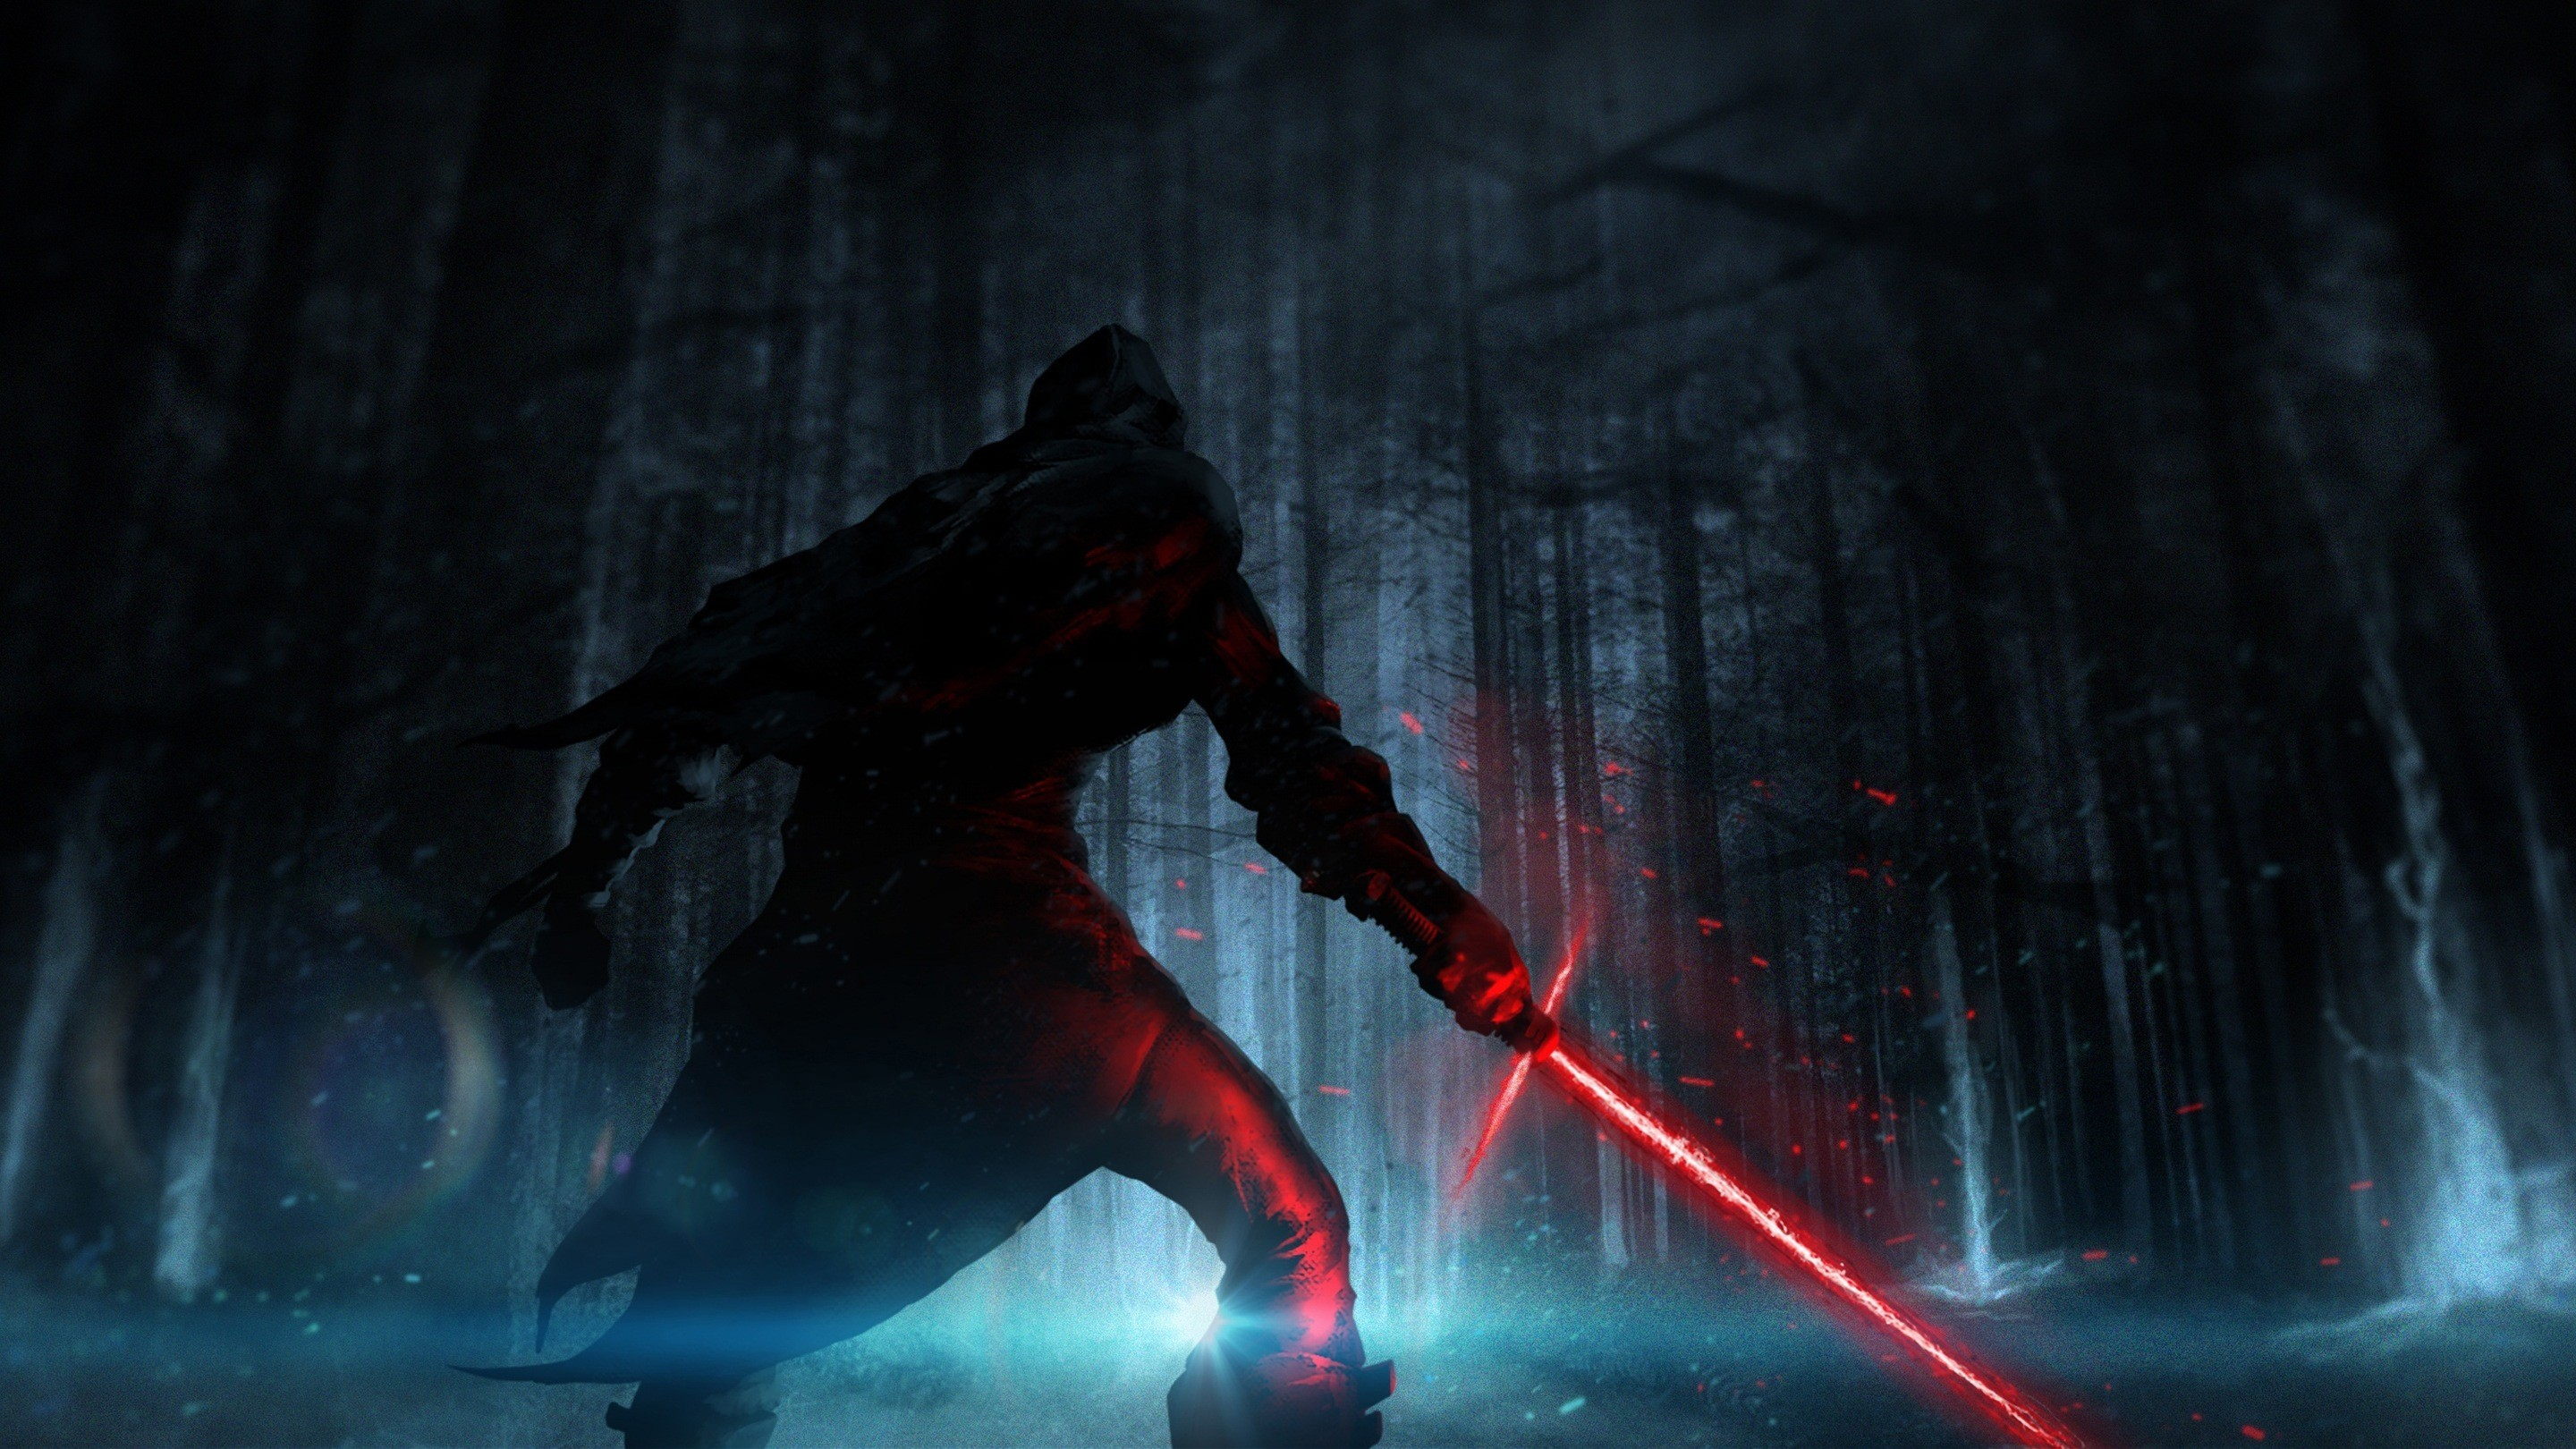 Star Wars 7 The Force Awakens Wallpaper Star Wars Triple Monitor